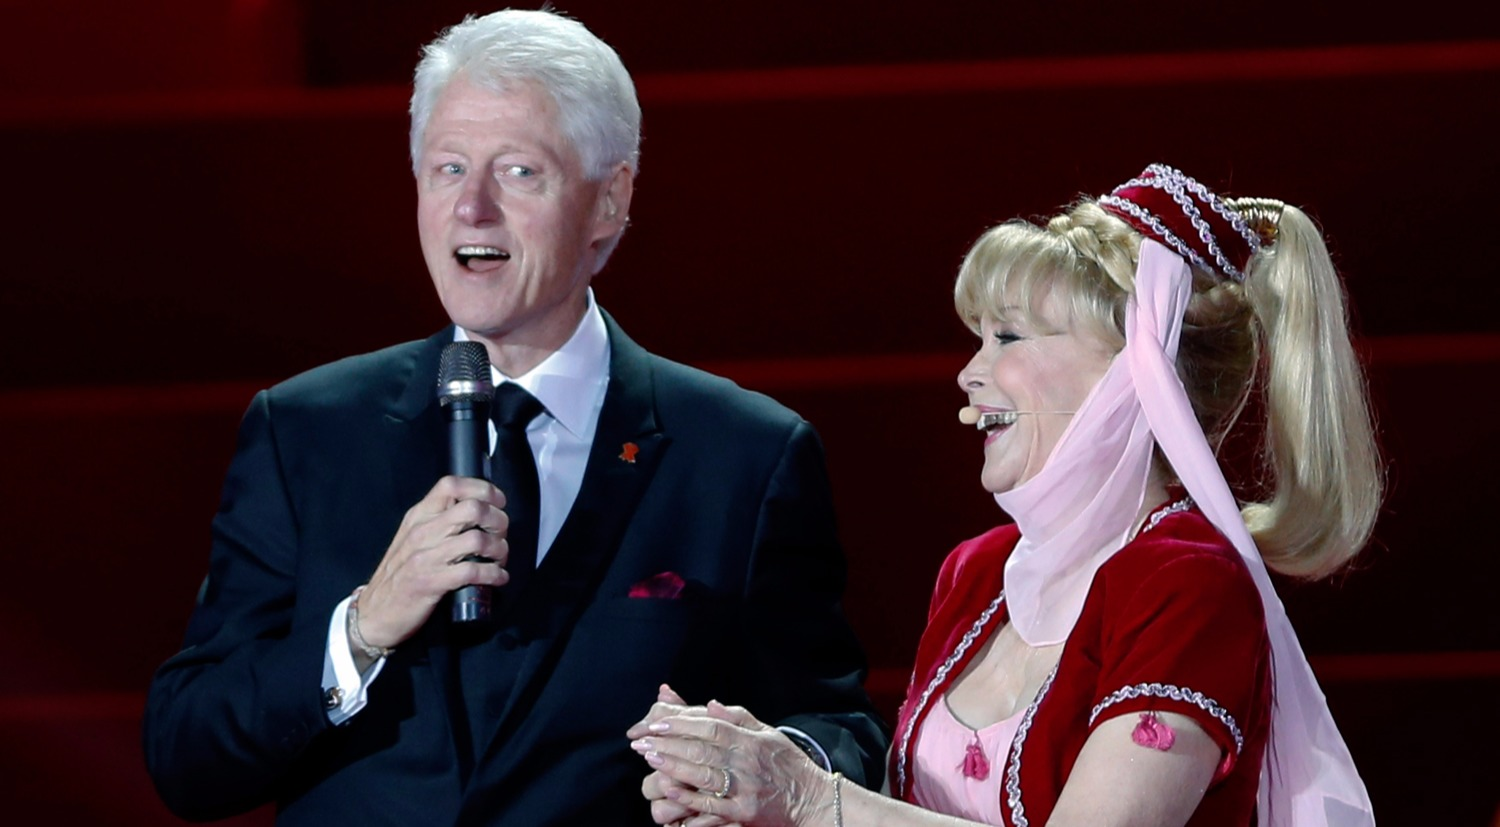 Barbara Eden appeared on her 1960s Jeanine dress. President Clinton and Barbara holding hands while President complimented her for an exceptional acting career